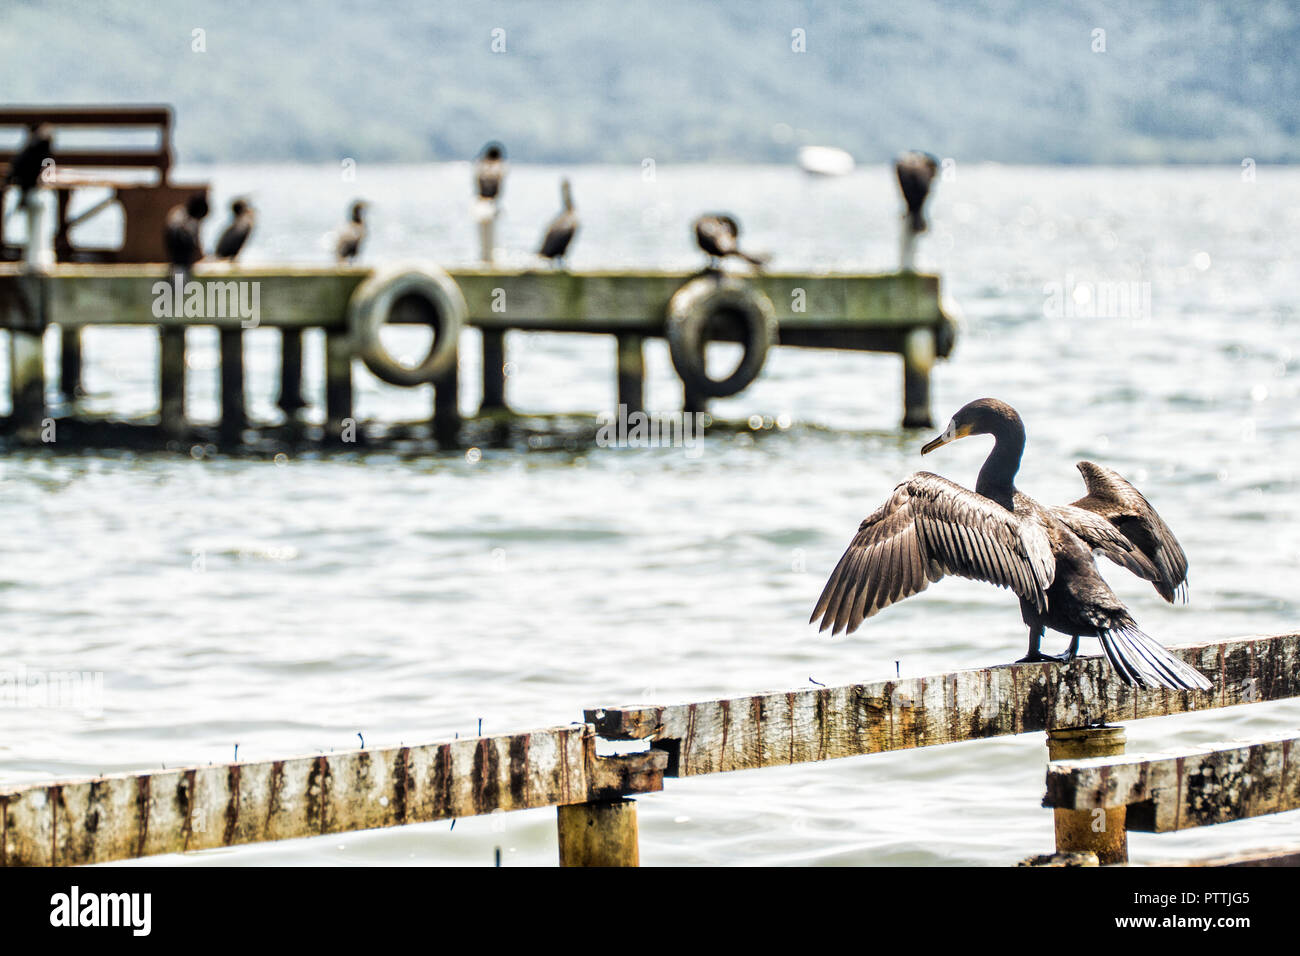 Cormorants (Phalacrocorax brasilianus) at Costa da Lagoa. Florianopolis, Santa Catarina, Brazil. - Stock Image